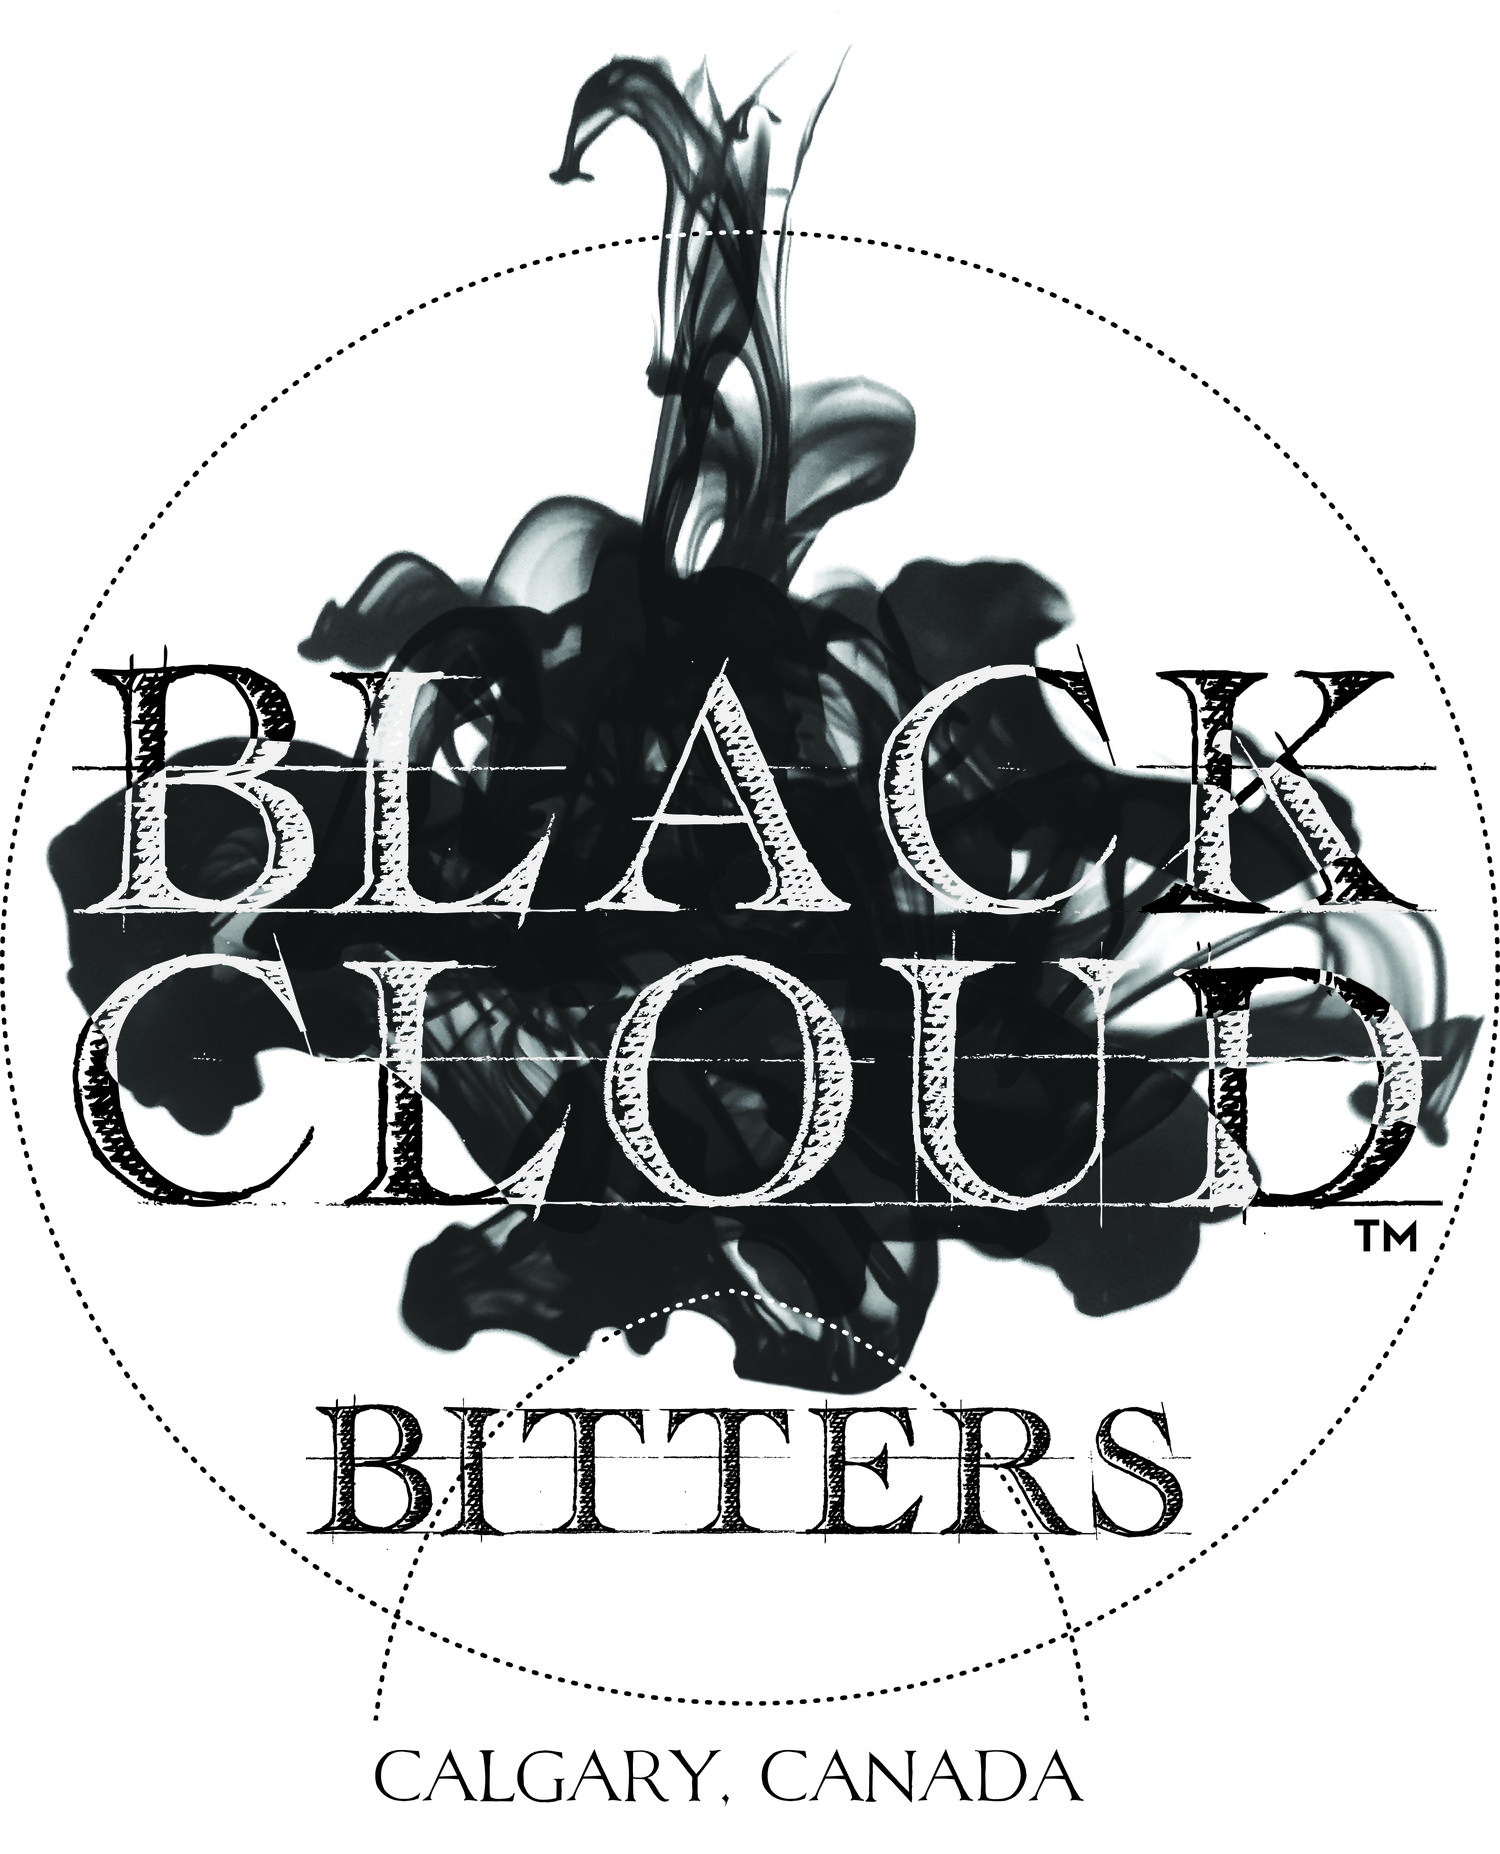 Black Cloud Bitters